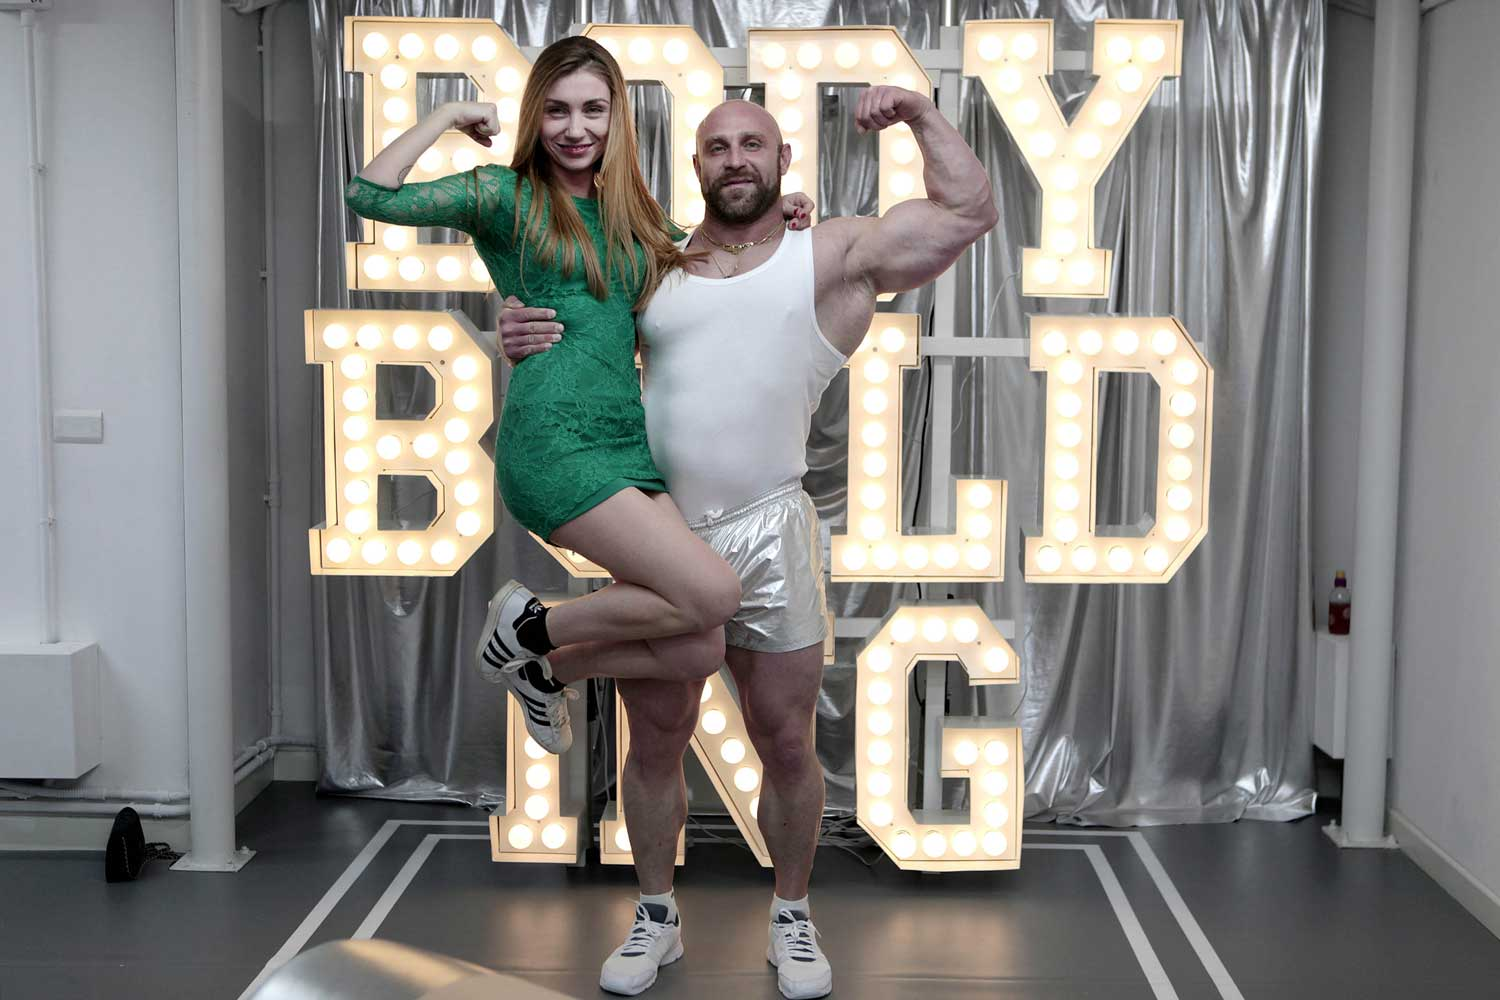 Body Building Party Milan Design Week 2015 | Yellowtrace